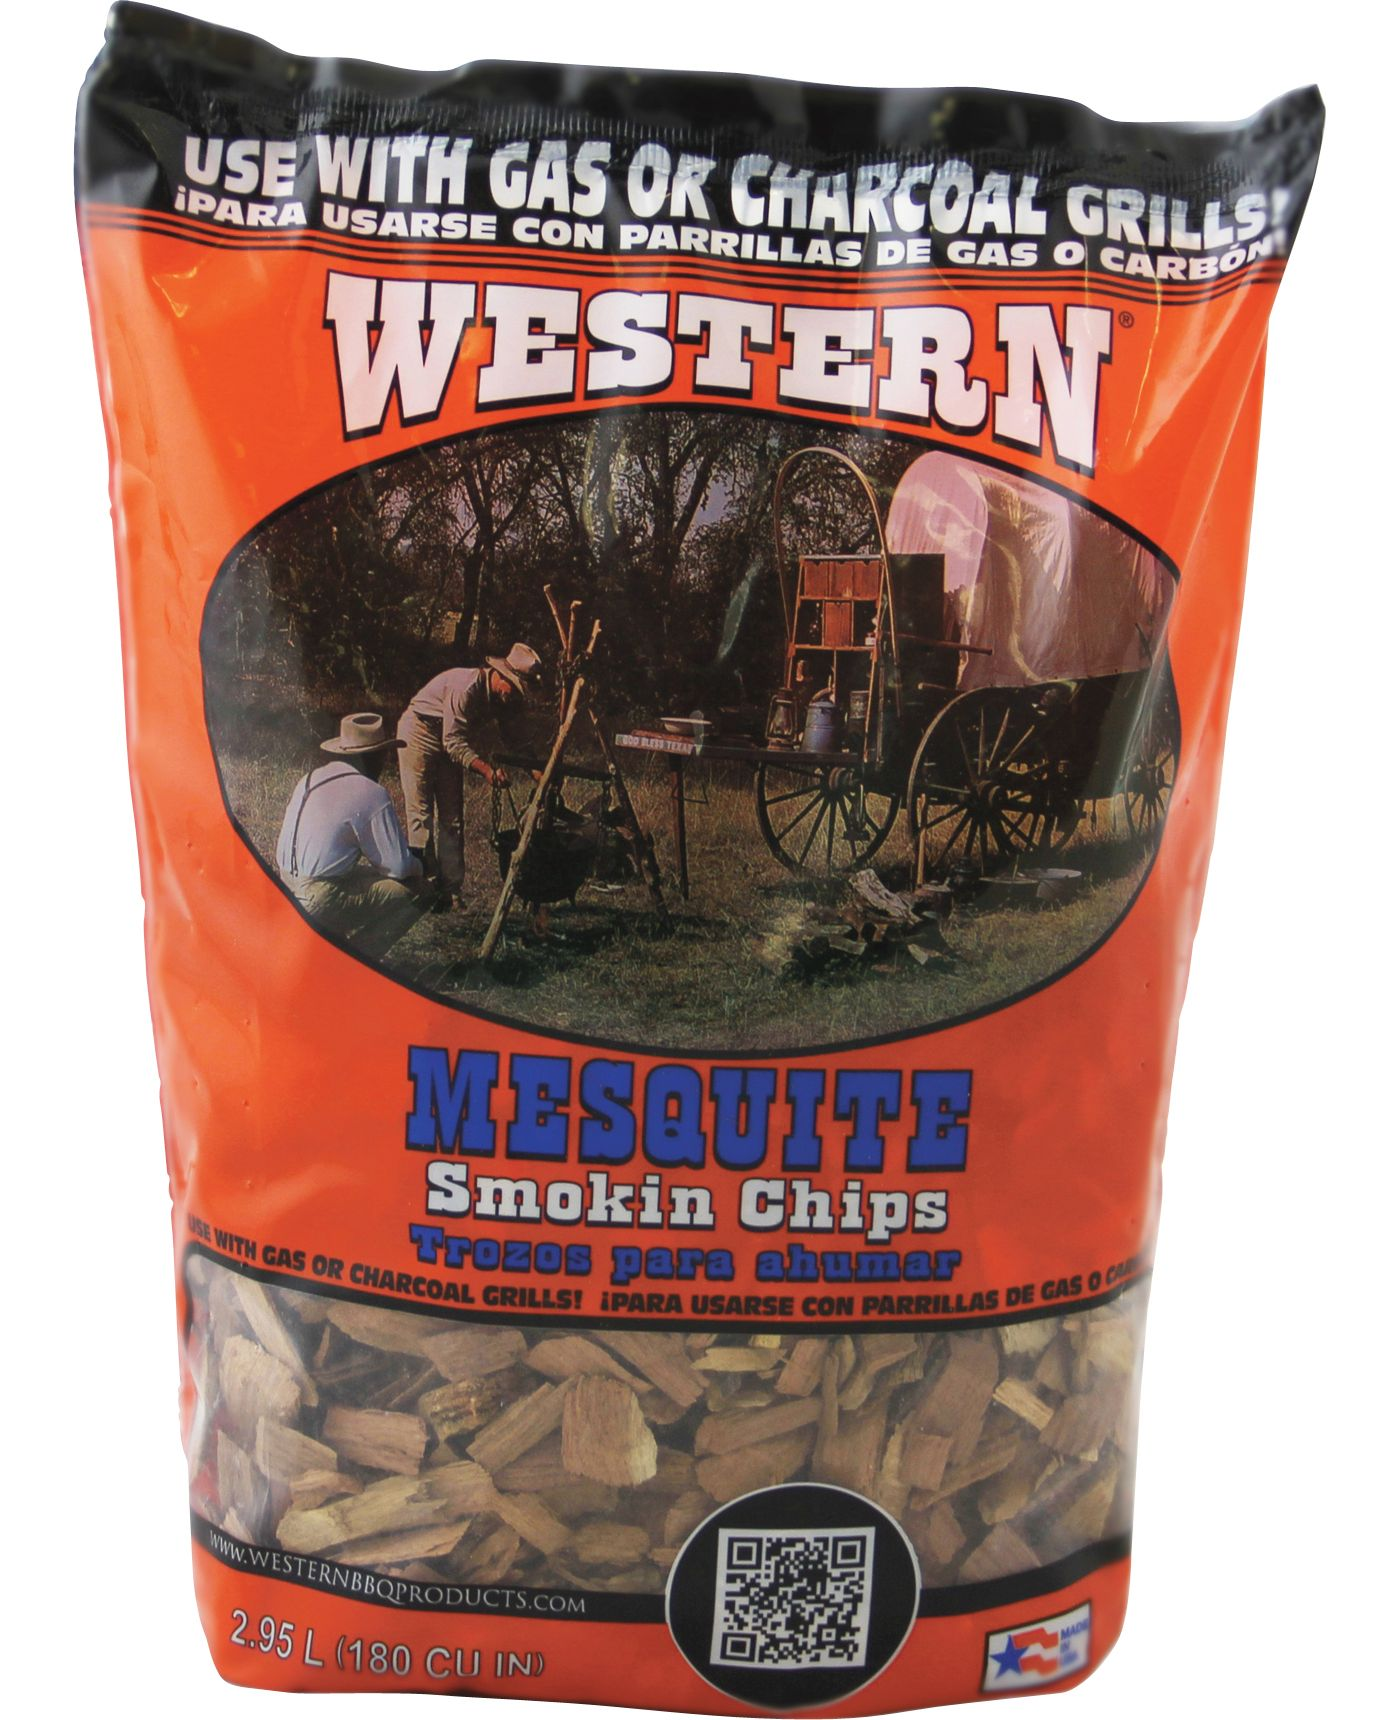 WESTERN BBQ Mesquite Smoking Chips